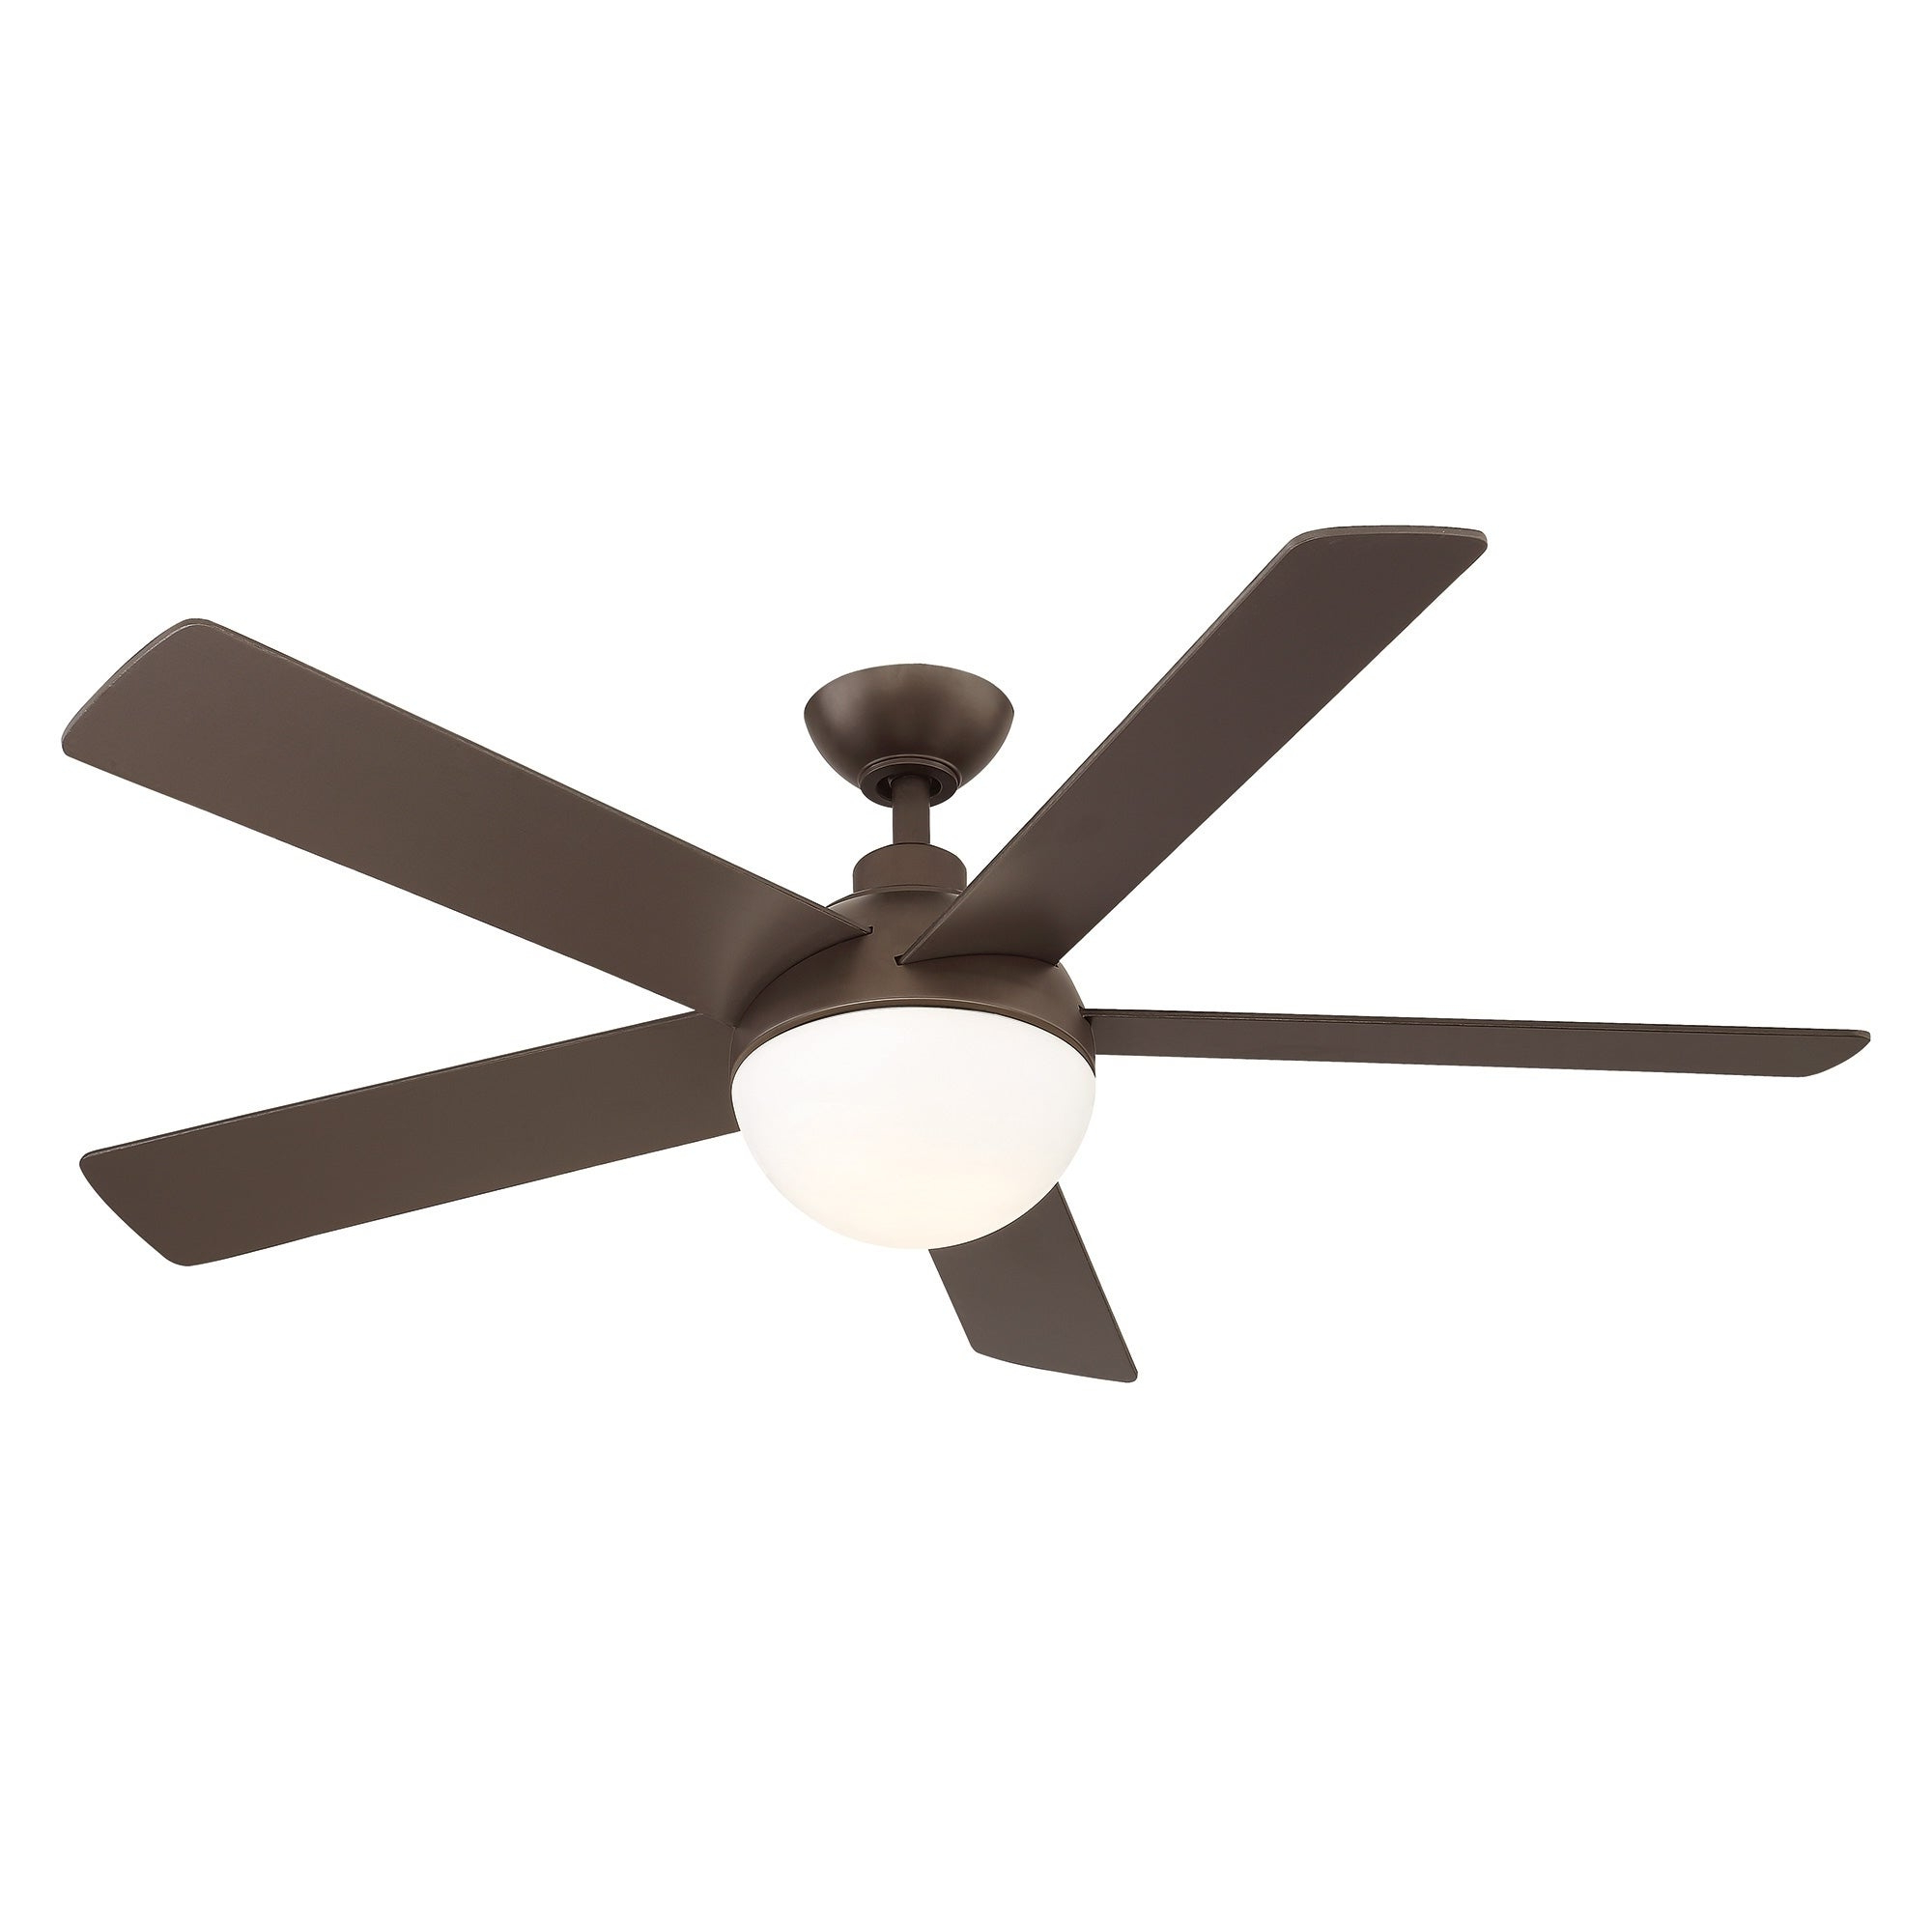 Eglo Tulum 52 Inch 5 Blade Ceiling Fan W/ Bronze Finish & Integrated Led  Light Kit Pertaining To Most Popular Ratcliffe 5 Blade Led Ceiling Fans (View 7 of 20)